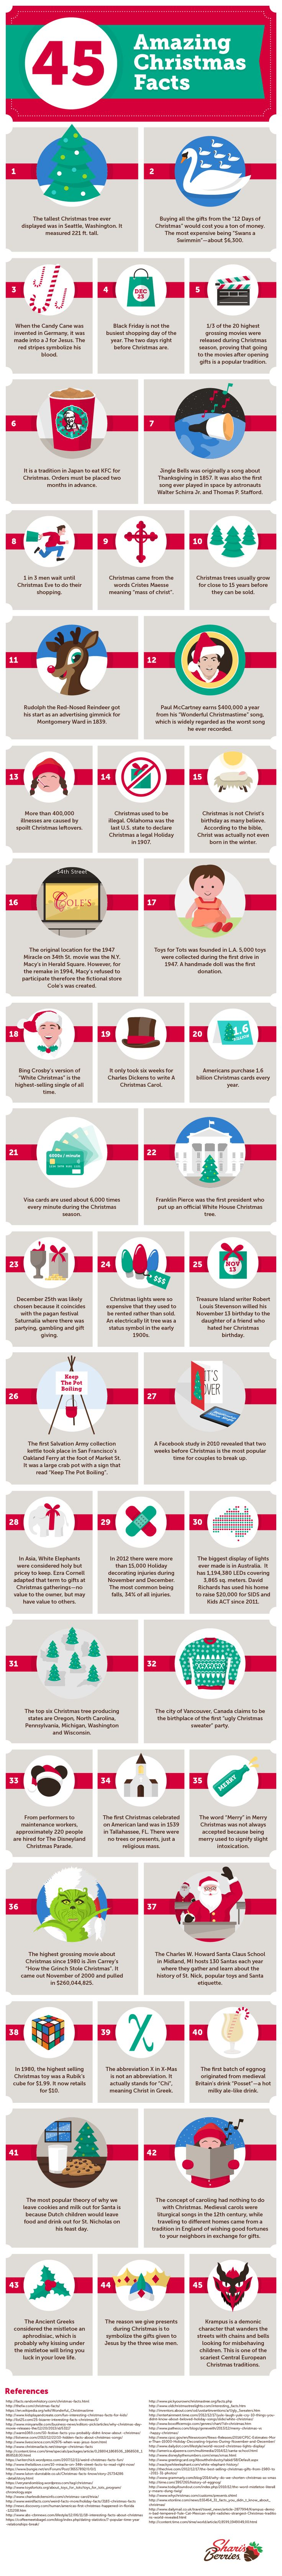 Whether Gifting Guru or Noel Newbie, raise your Christmas IQ with this amazing list of 45 facts about Christmas.